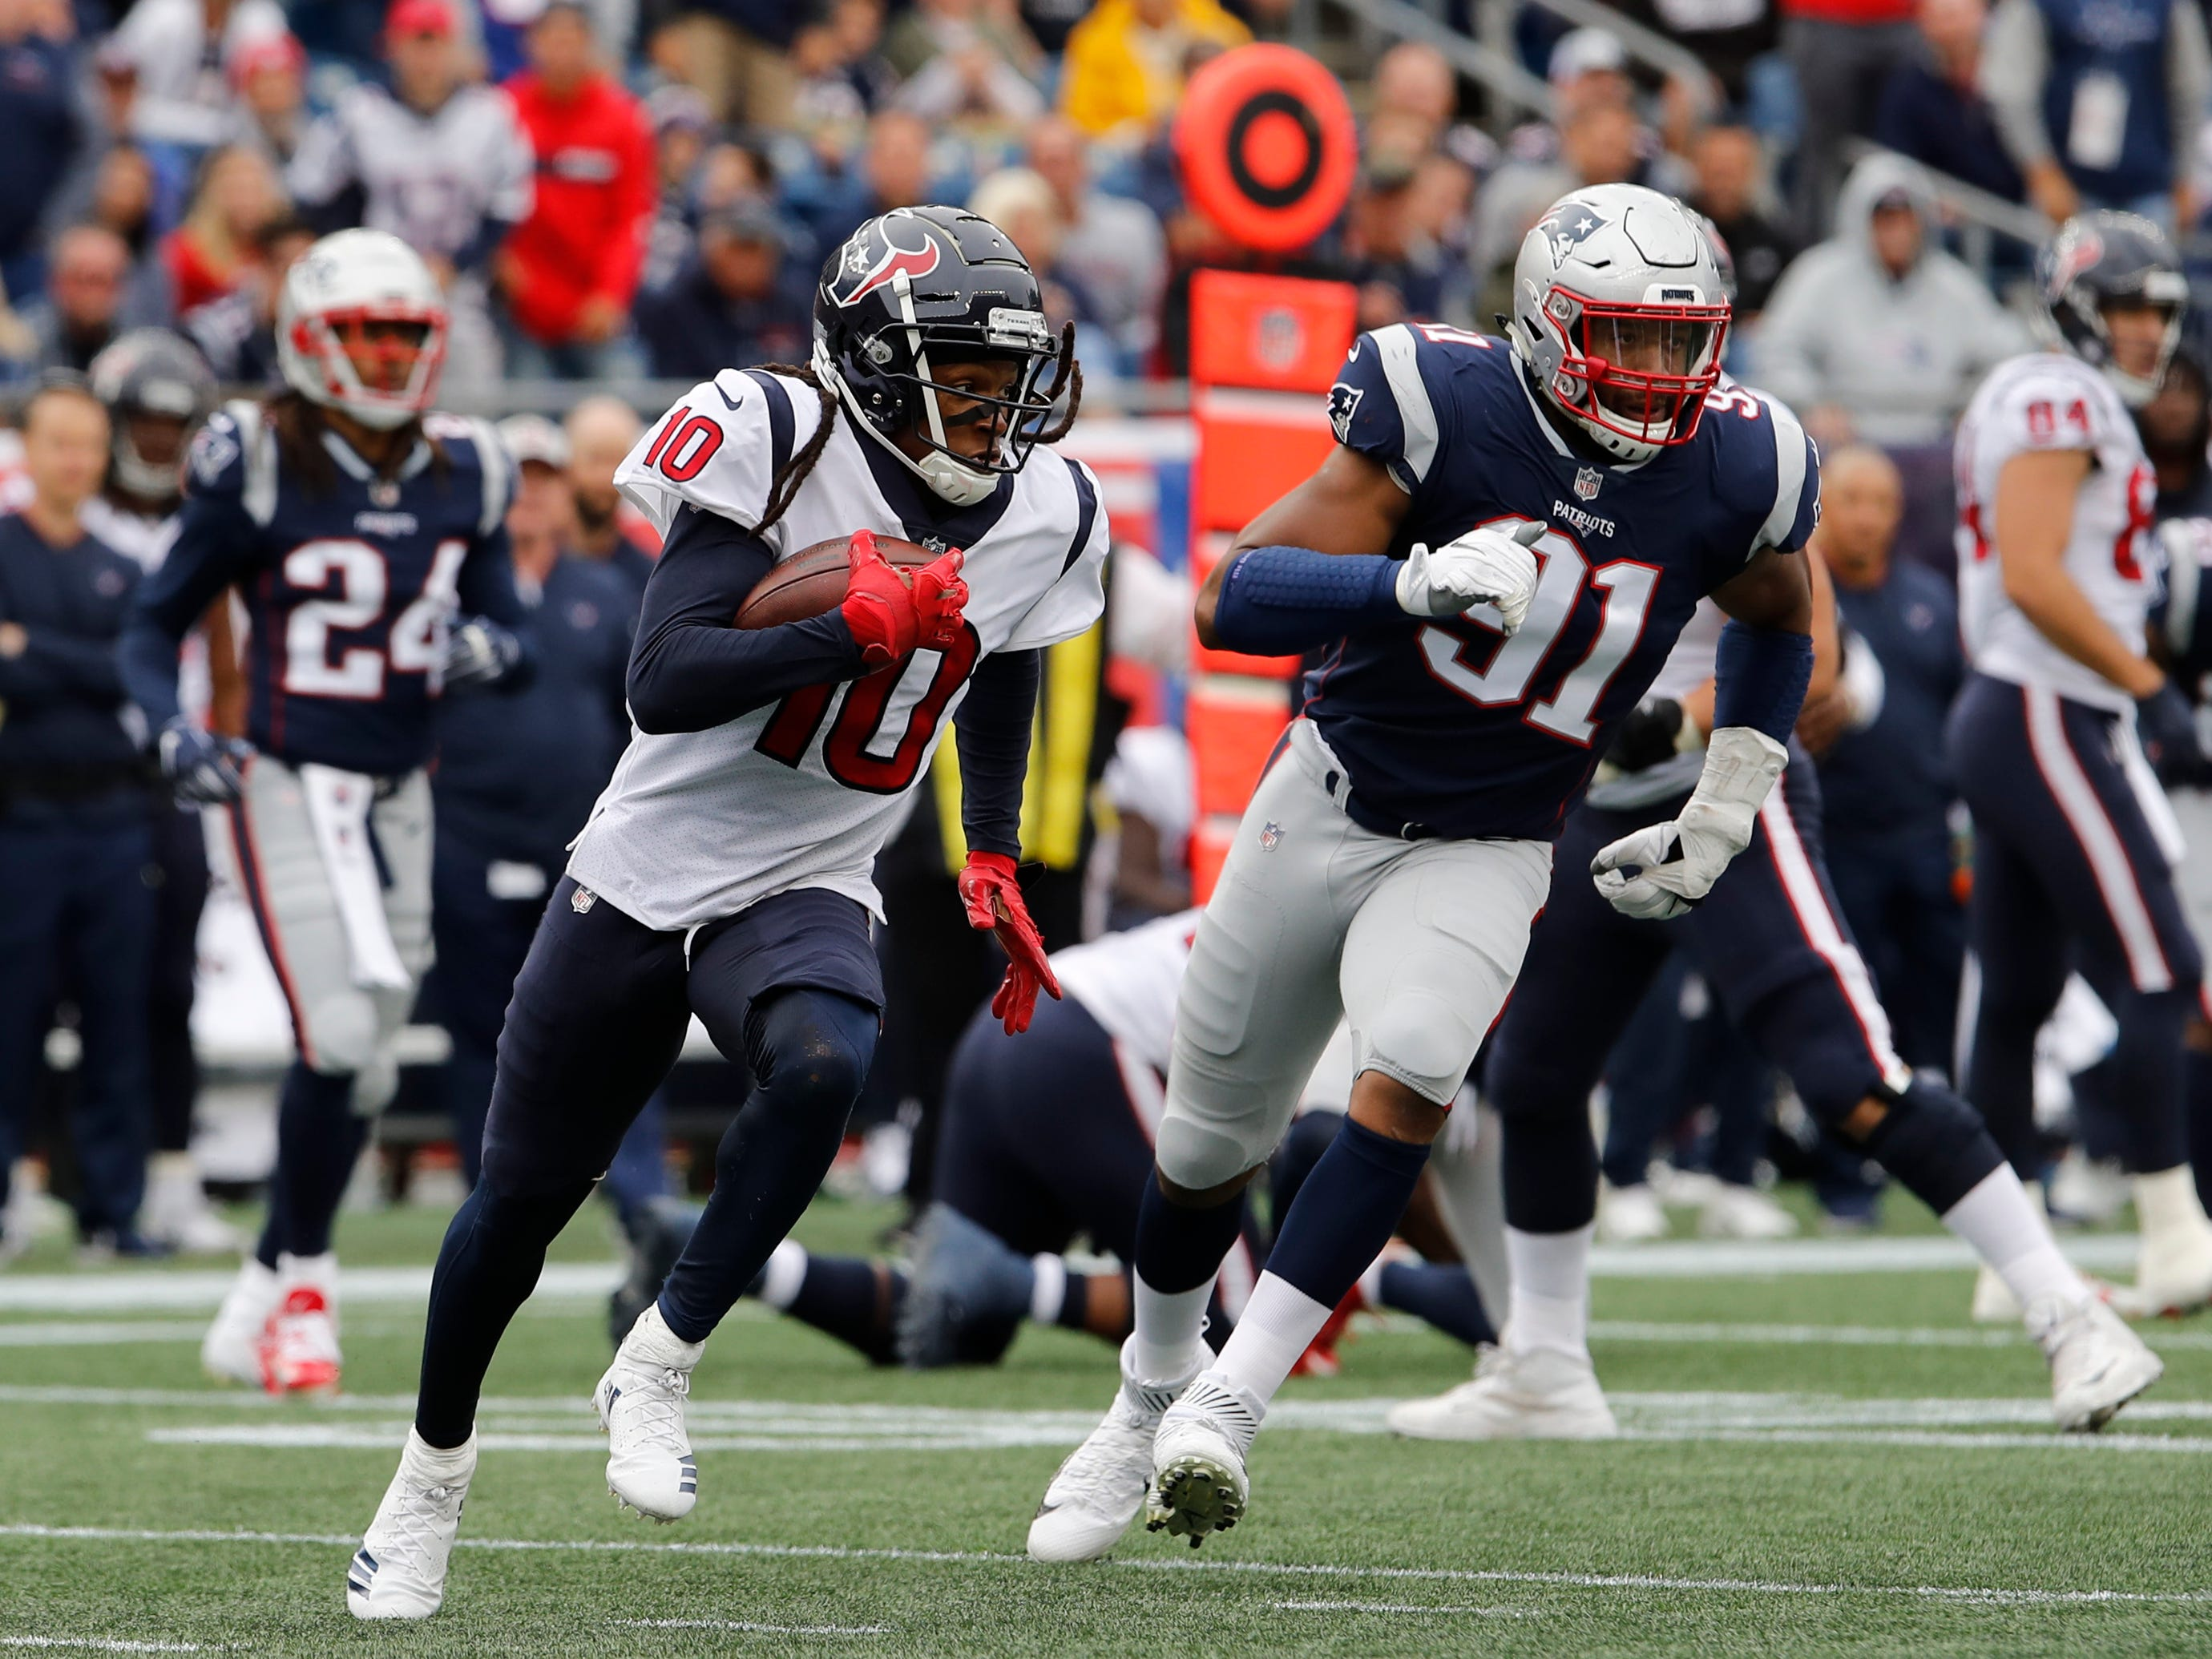 14. Texans (11): Opening against New England not easy way to knock off rust for Watt and Watson. Silver lining — Houston churned out 167 yards on ground.